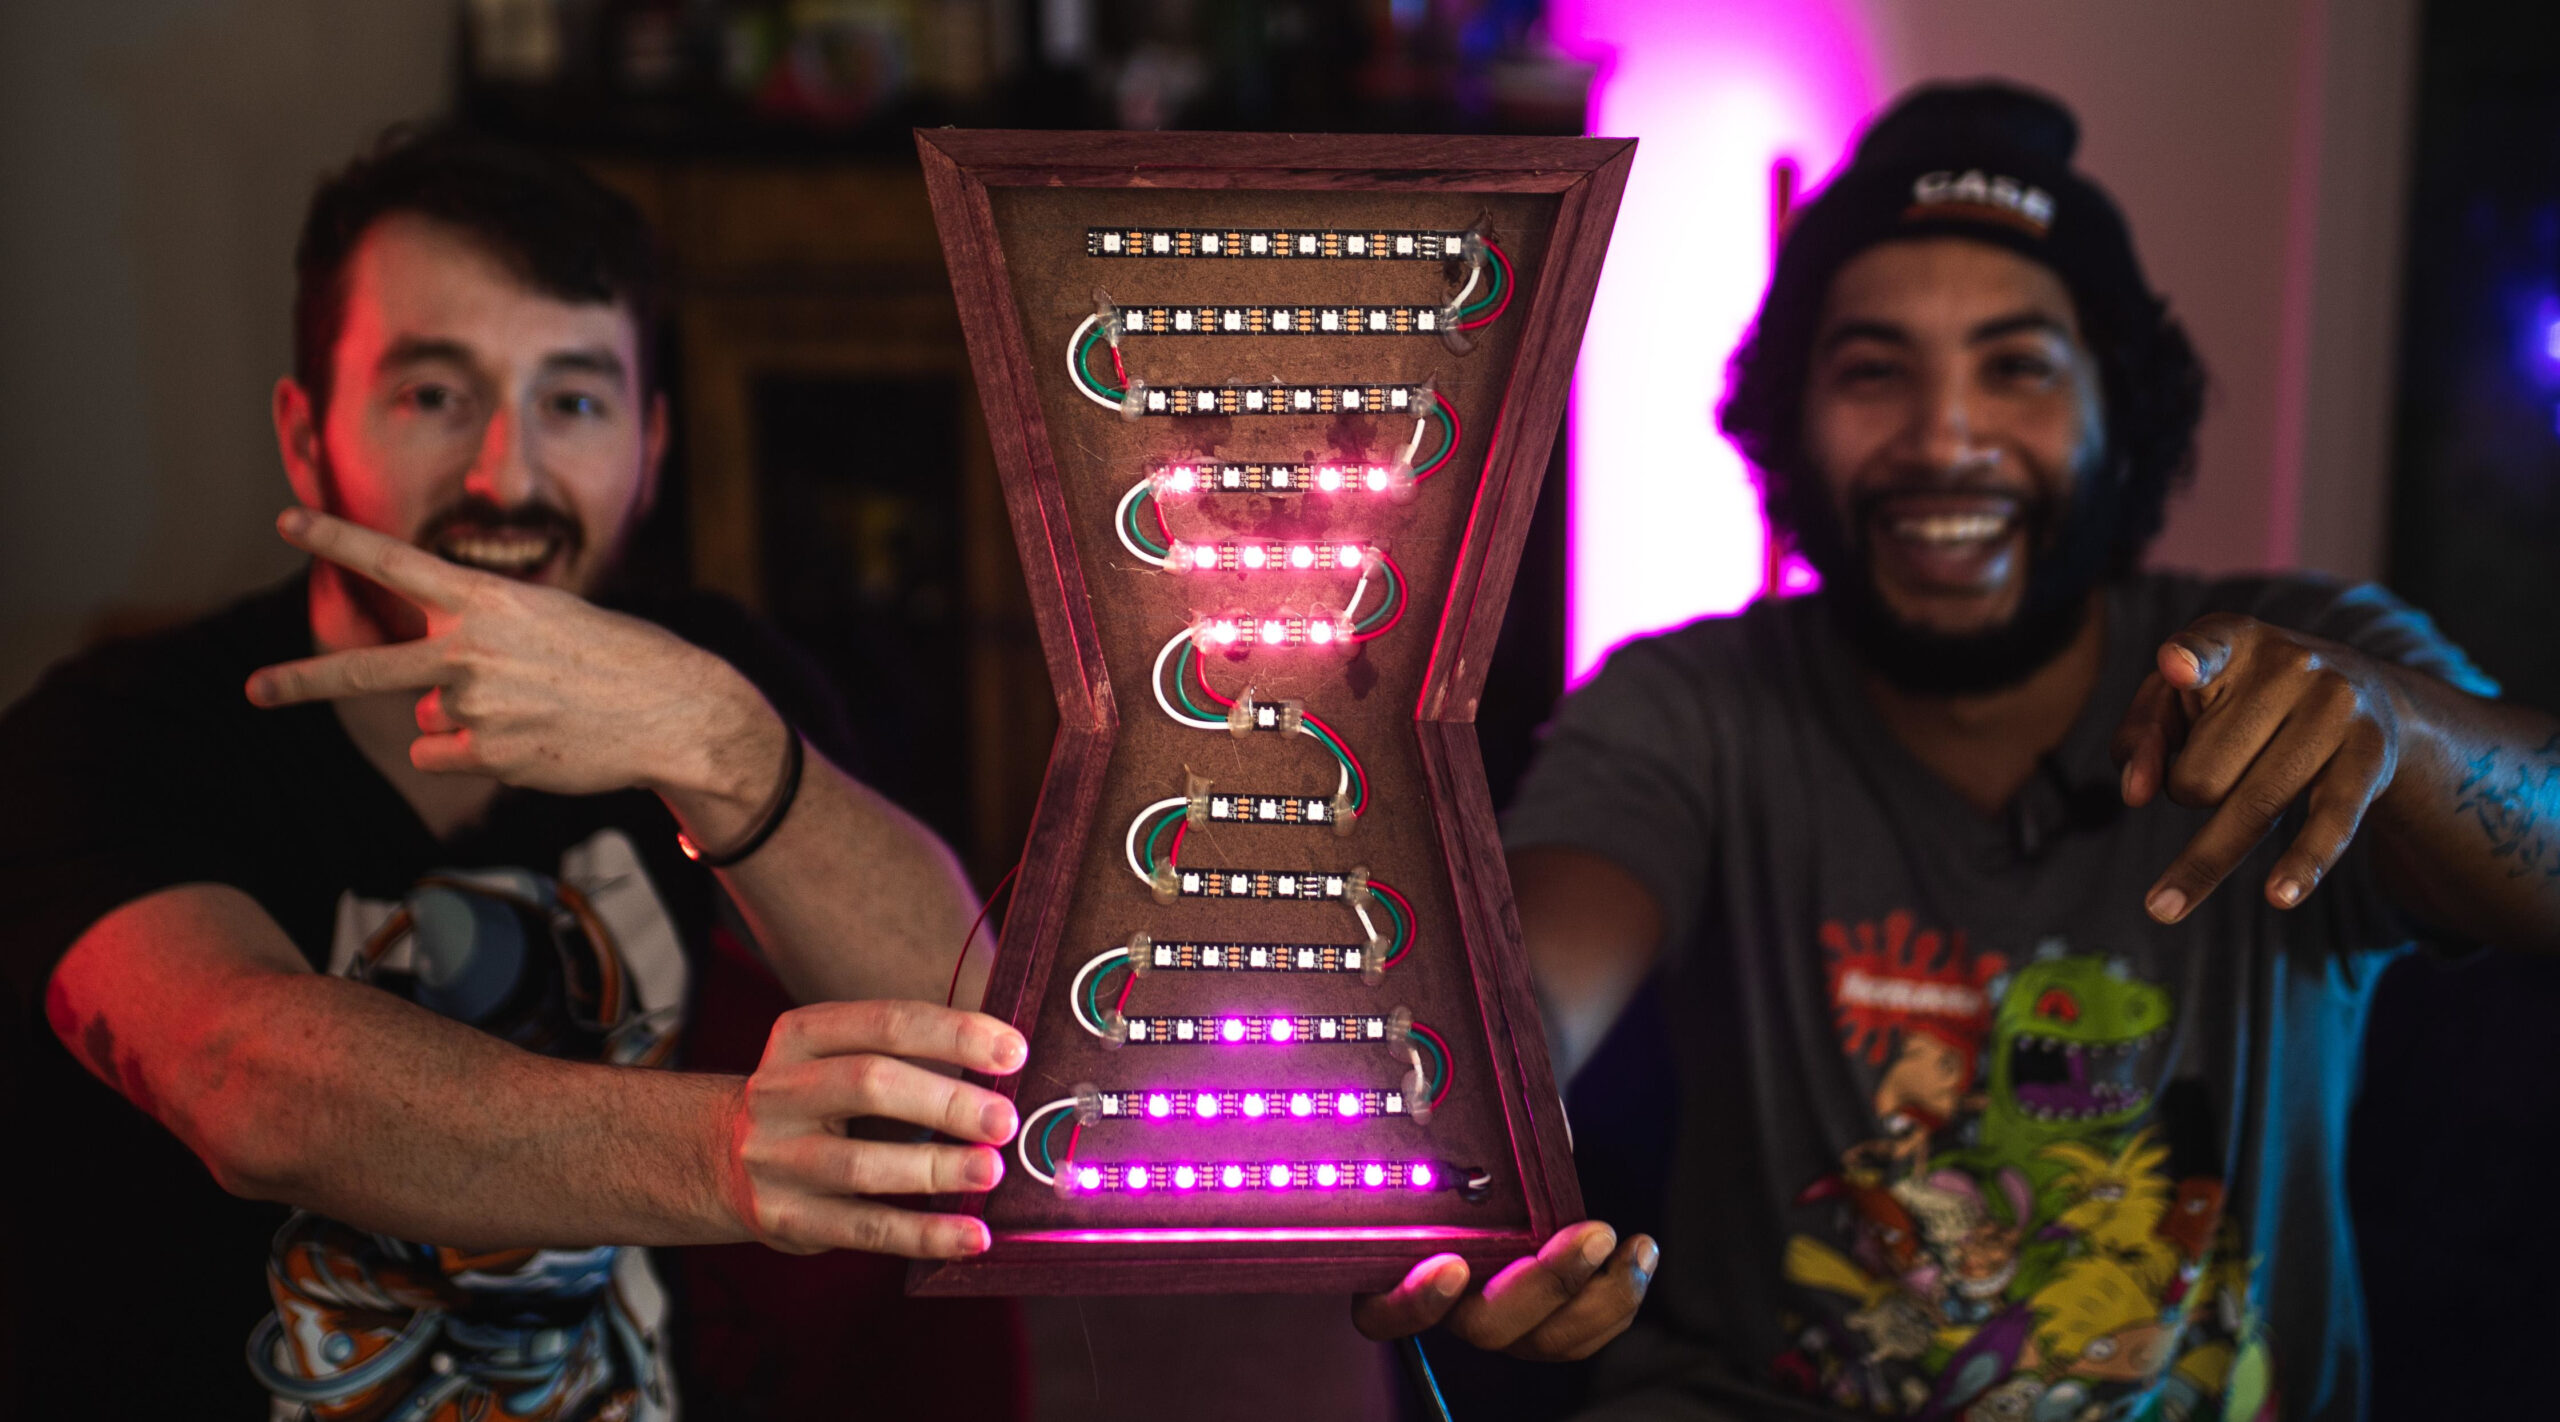 LED Hourglass Moves Like The Real Thing